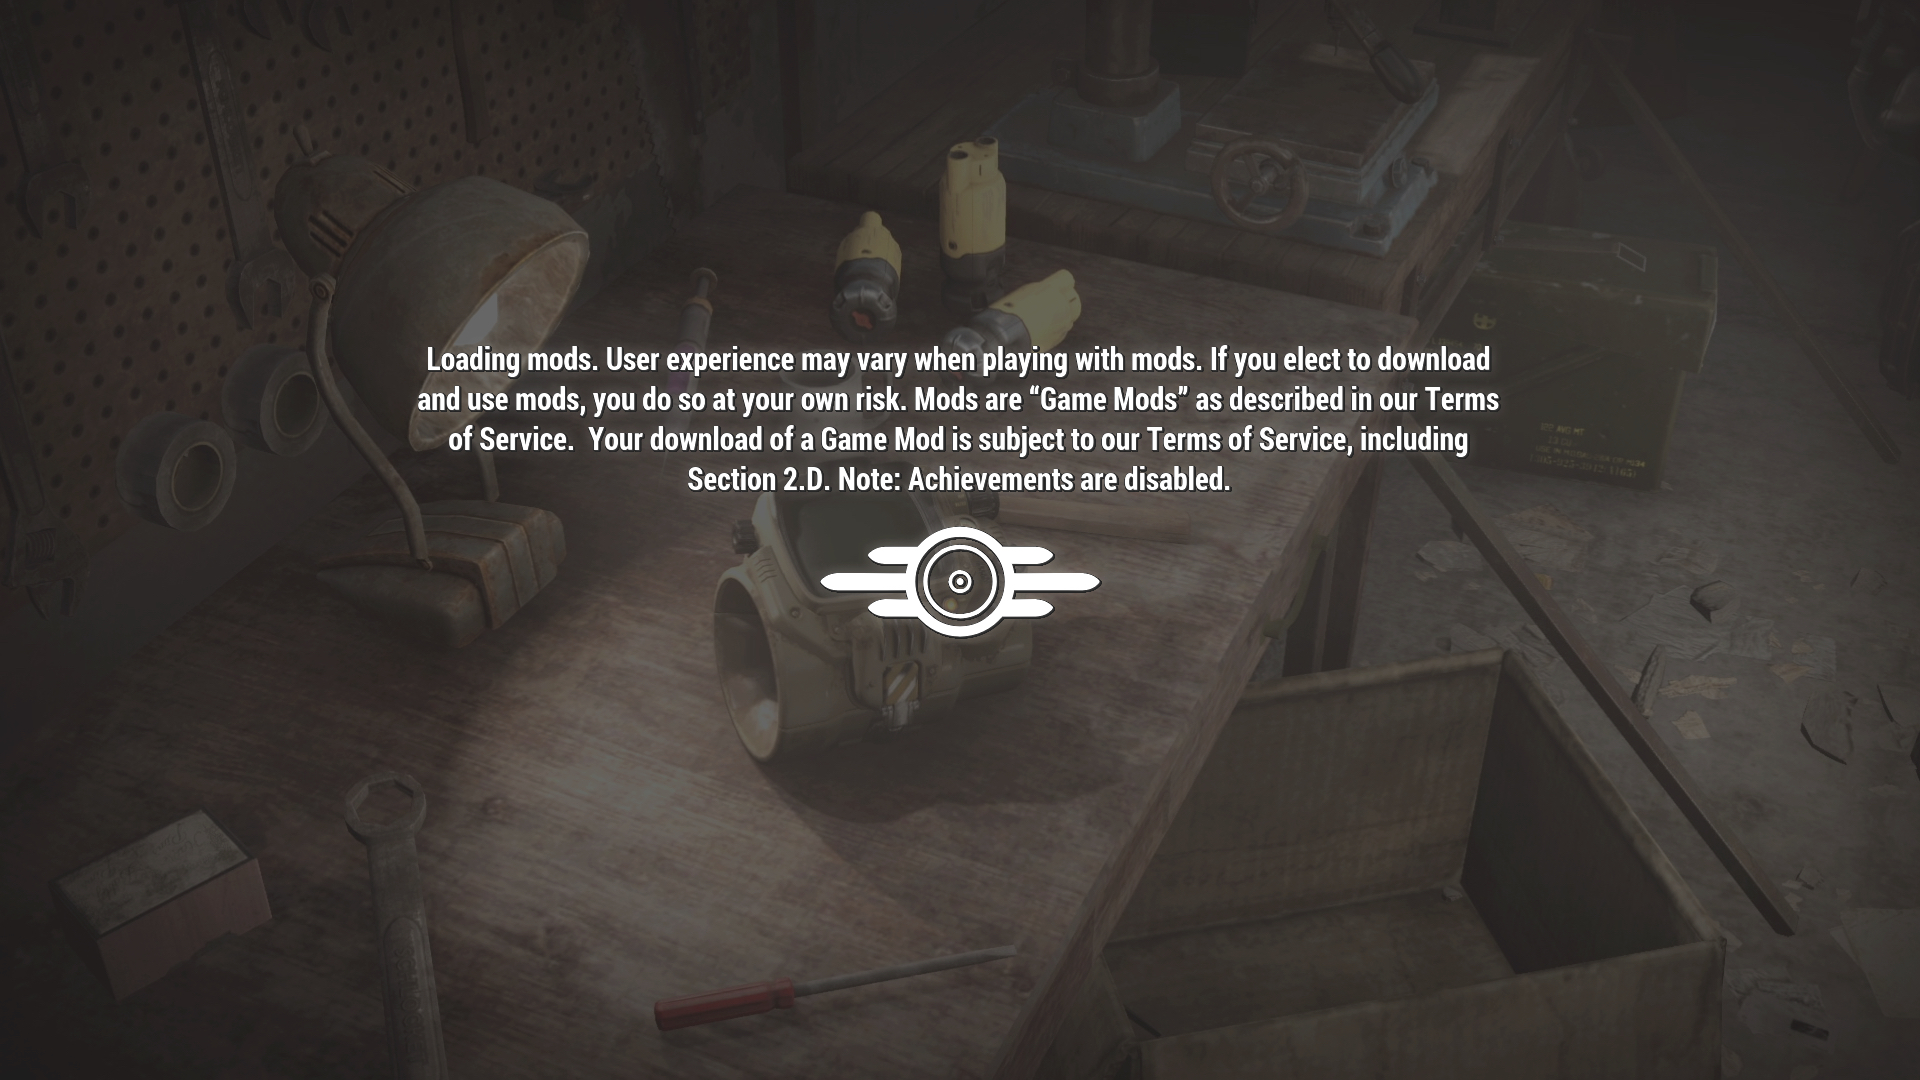 ps4 fallout 4 mods release 5 things to know. Black Bedroom Furniture Sets. Home Design Ideas